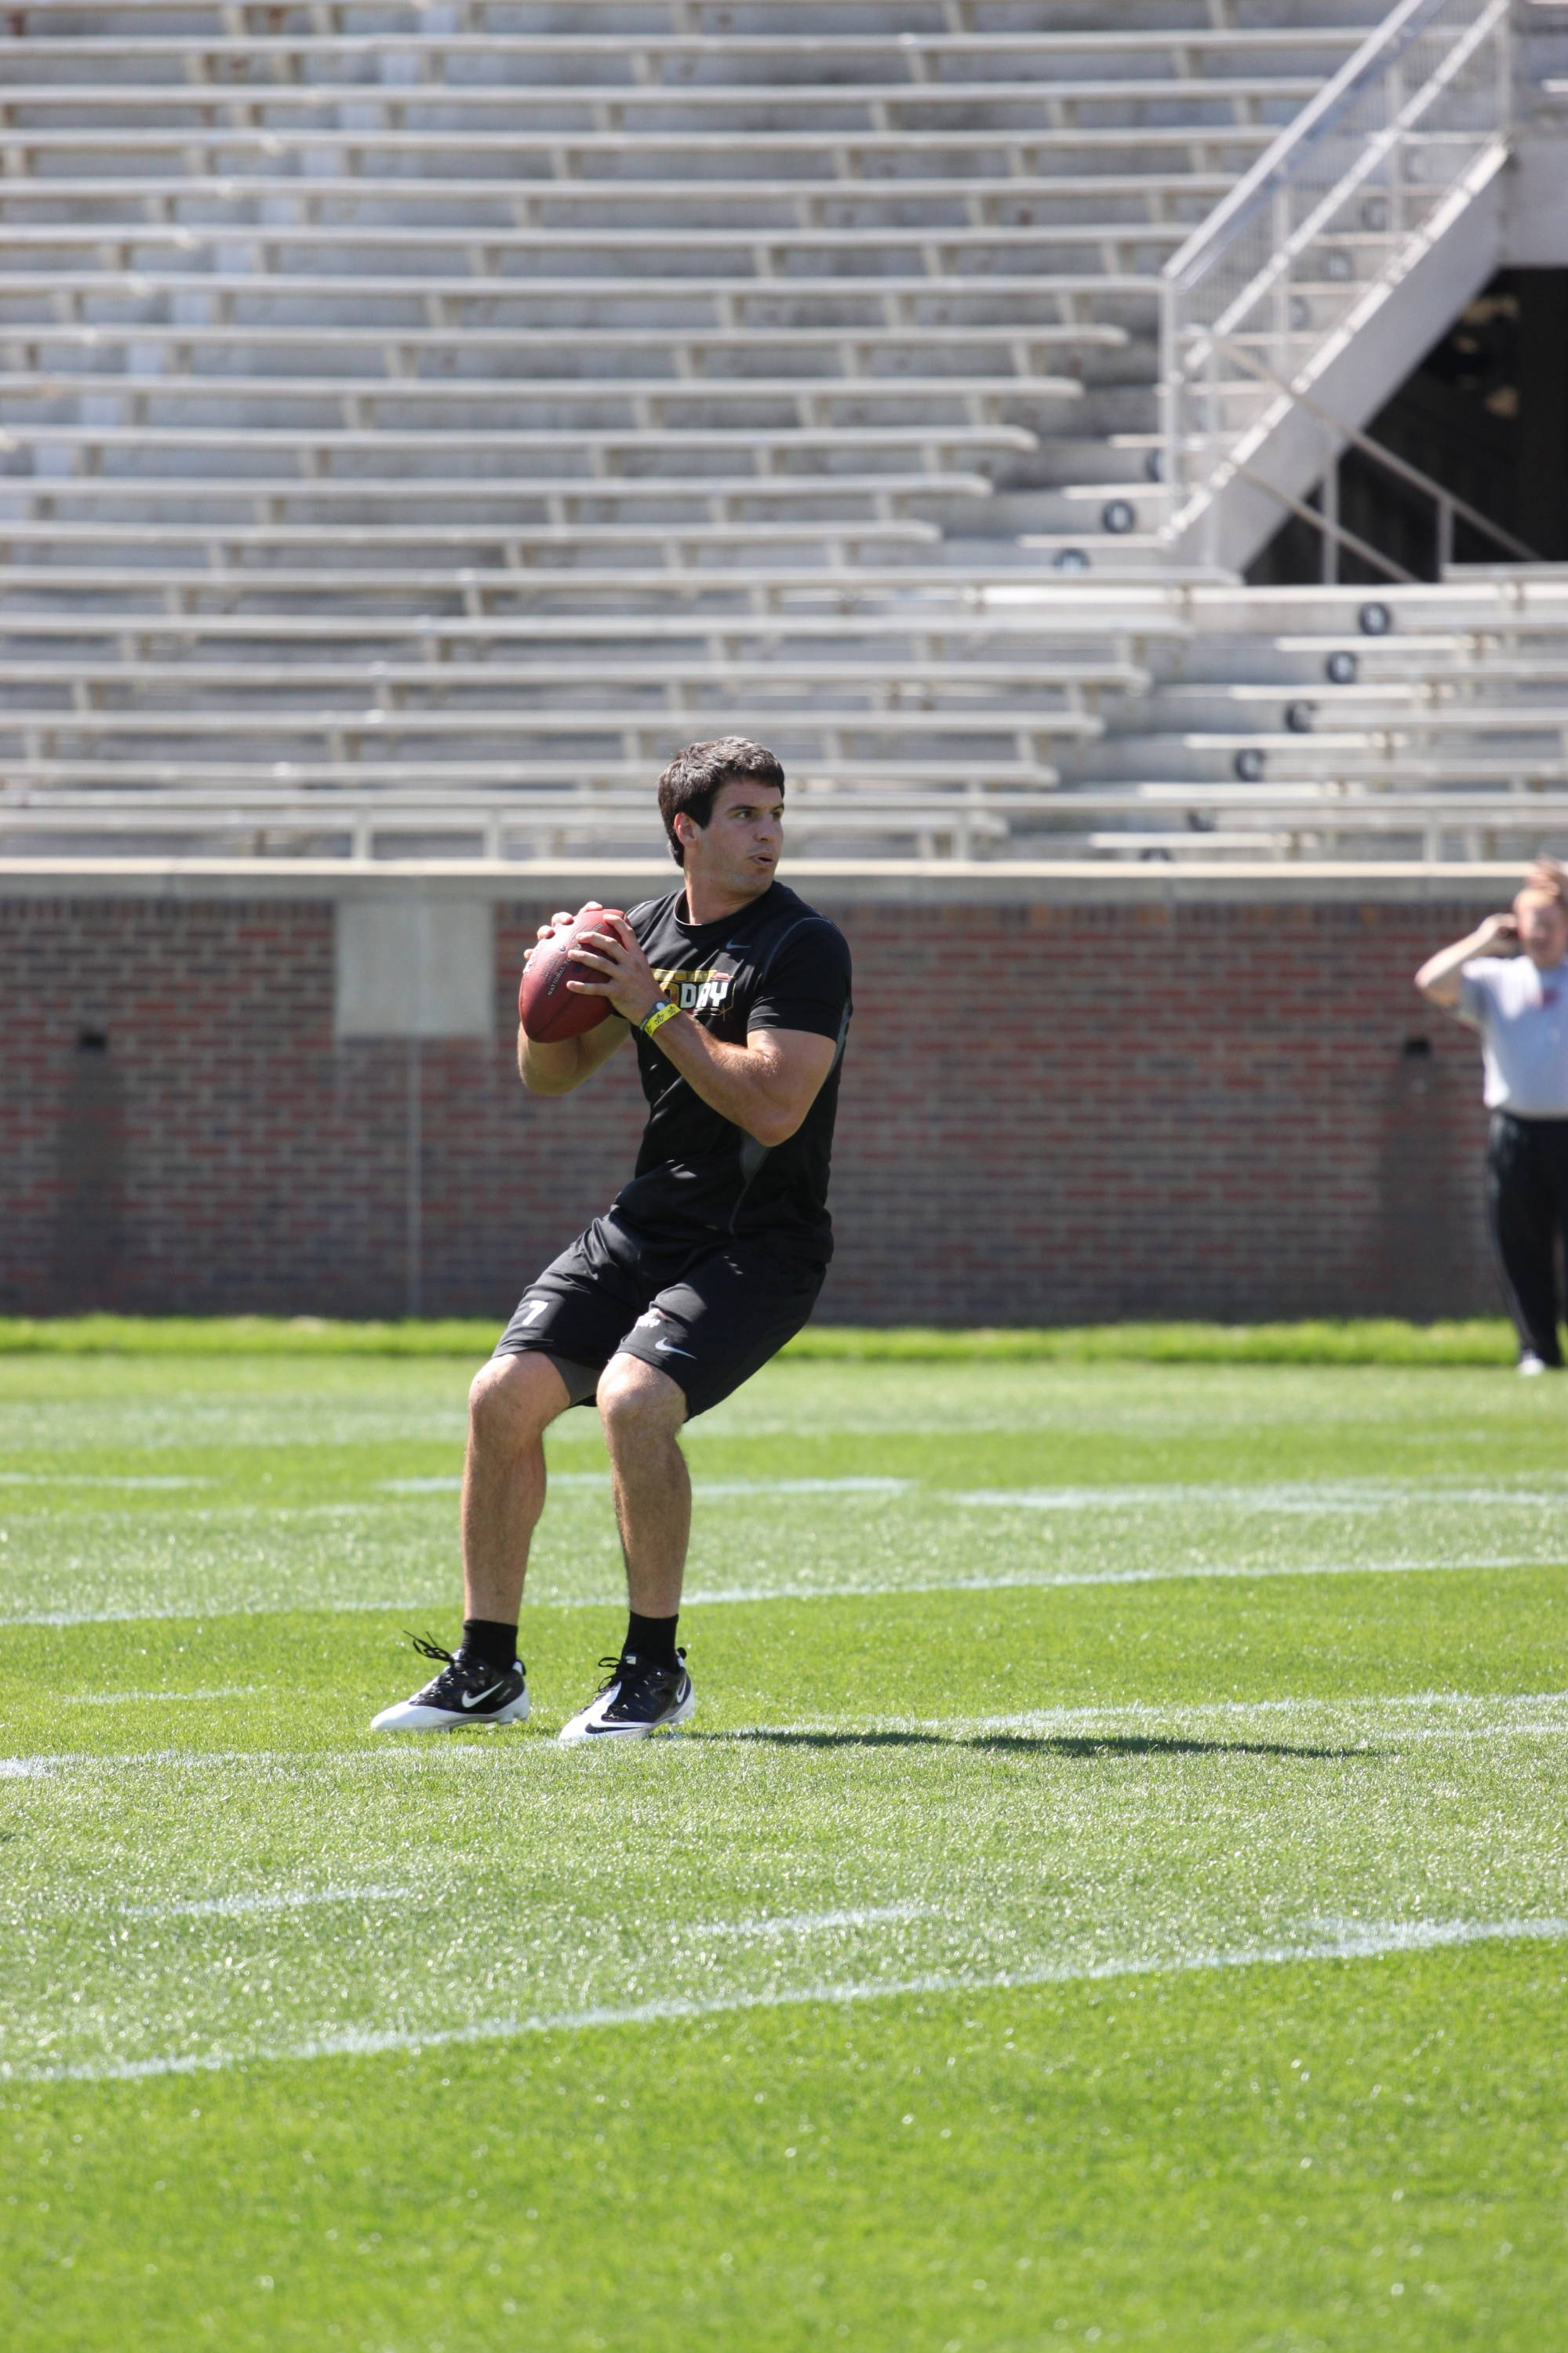 Christian Ponder drops back to pass.